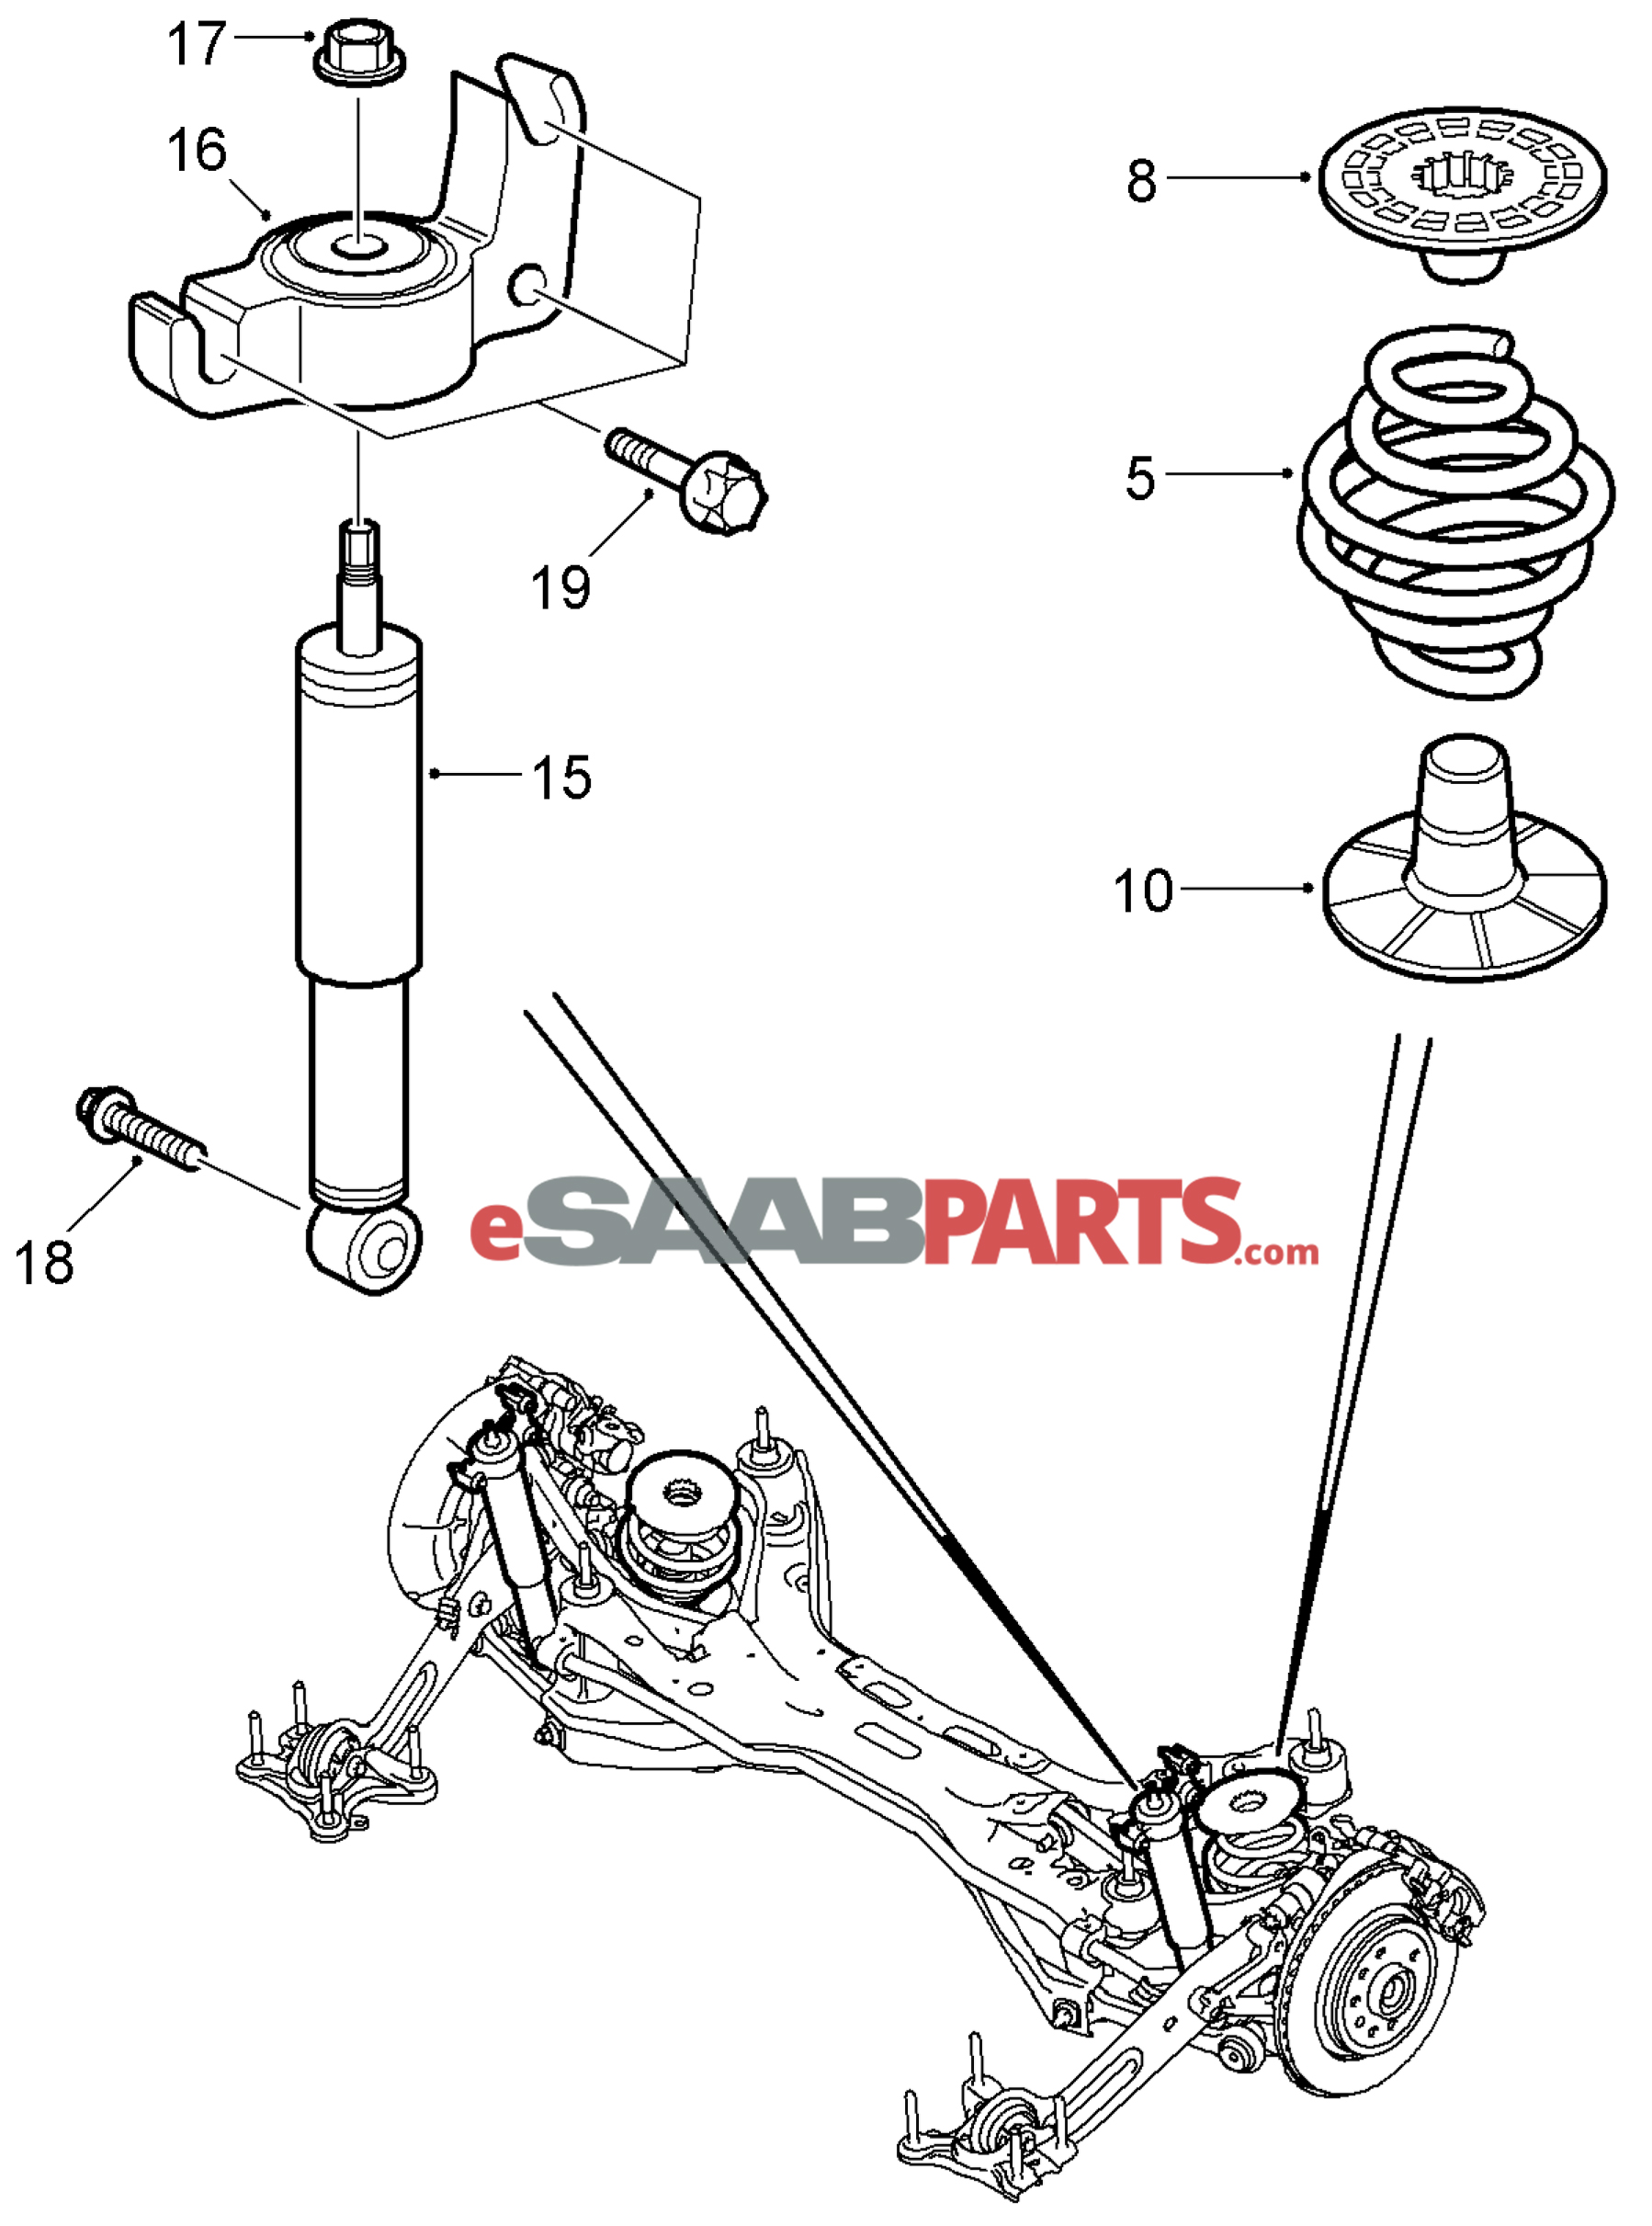 Saab 900 Se Ignition Switch Wiring Diagram 89 Saab 900